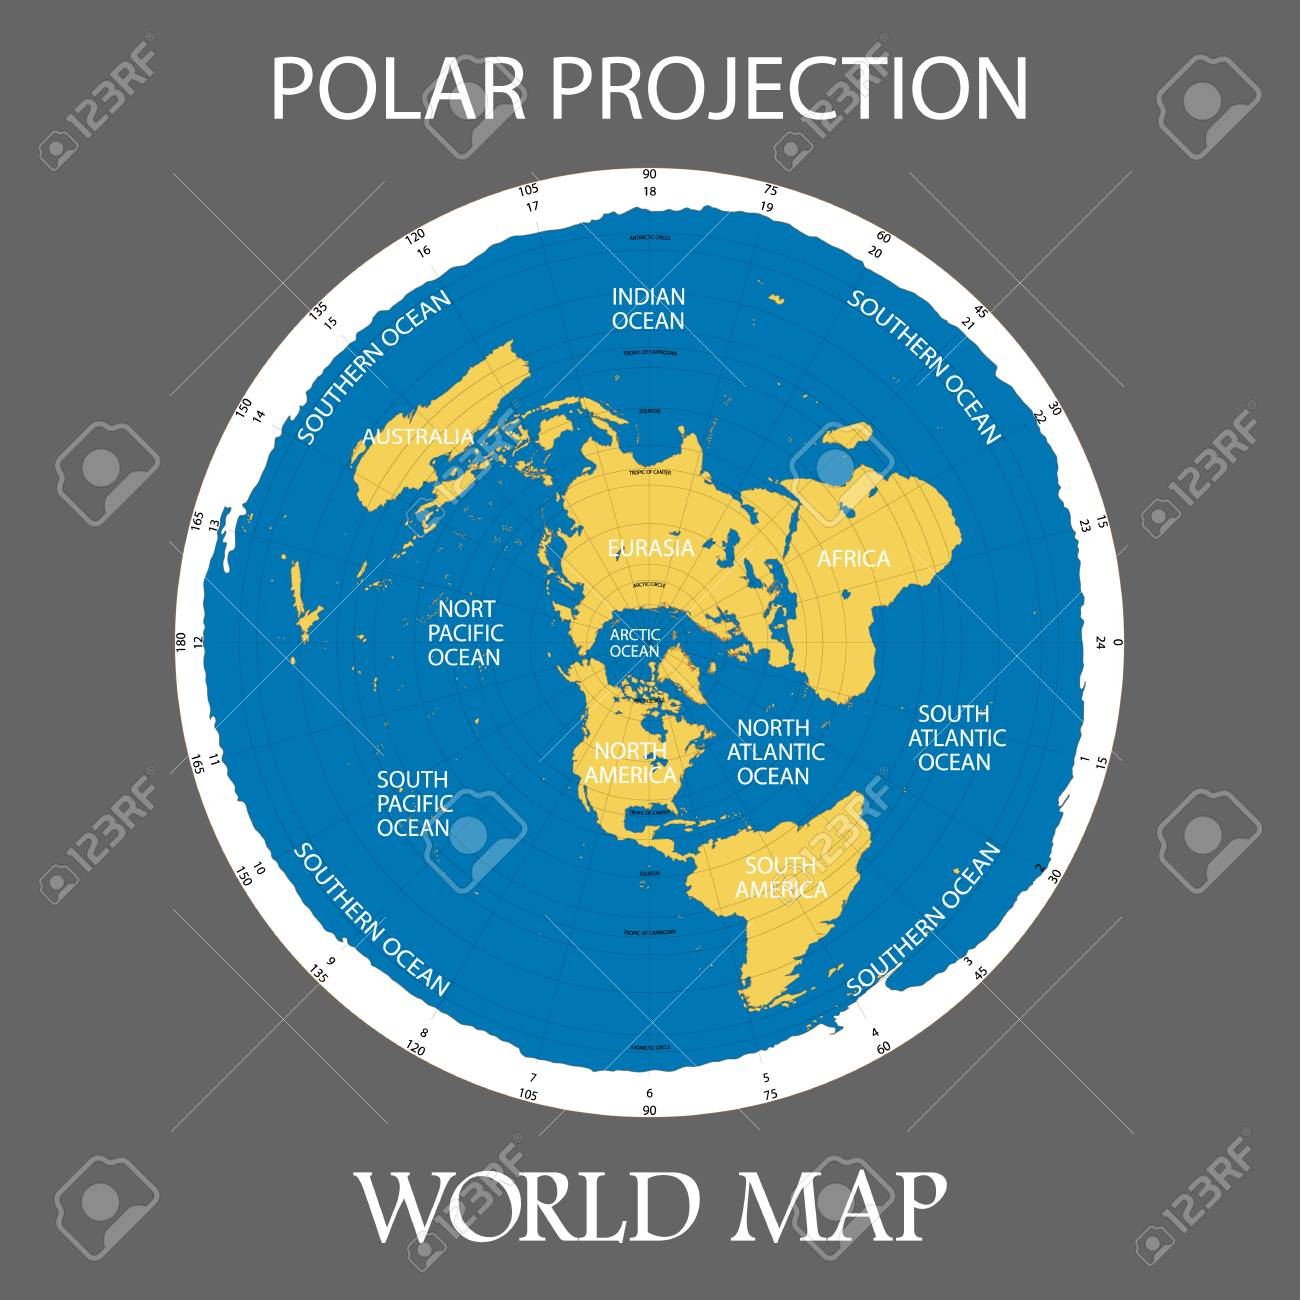 Azimuthal equidistant projection illustration of the map of.. on model of map, set of map, photography of map, drawing of map, map of map, animation of map, texture of map, element of map, depression of map, shape of map, scale of map, type of map, view of map, orientation of map,